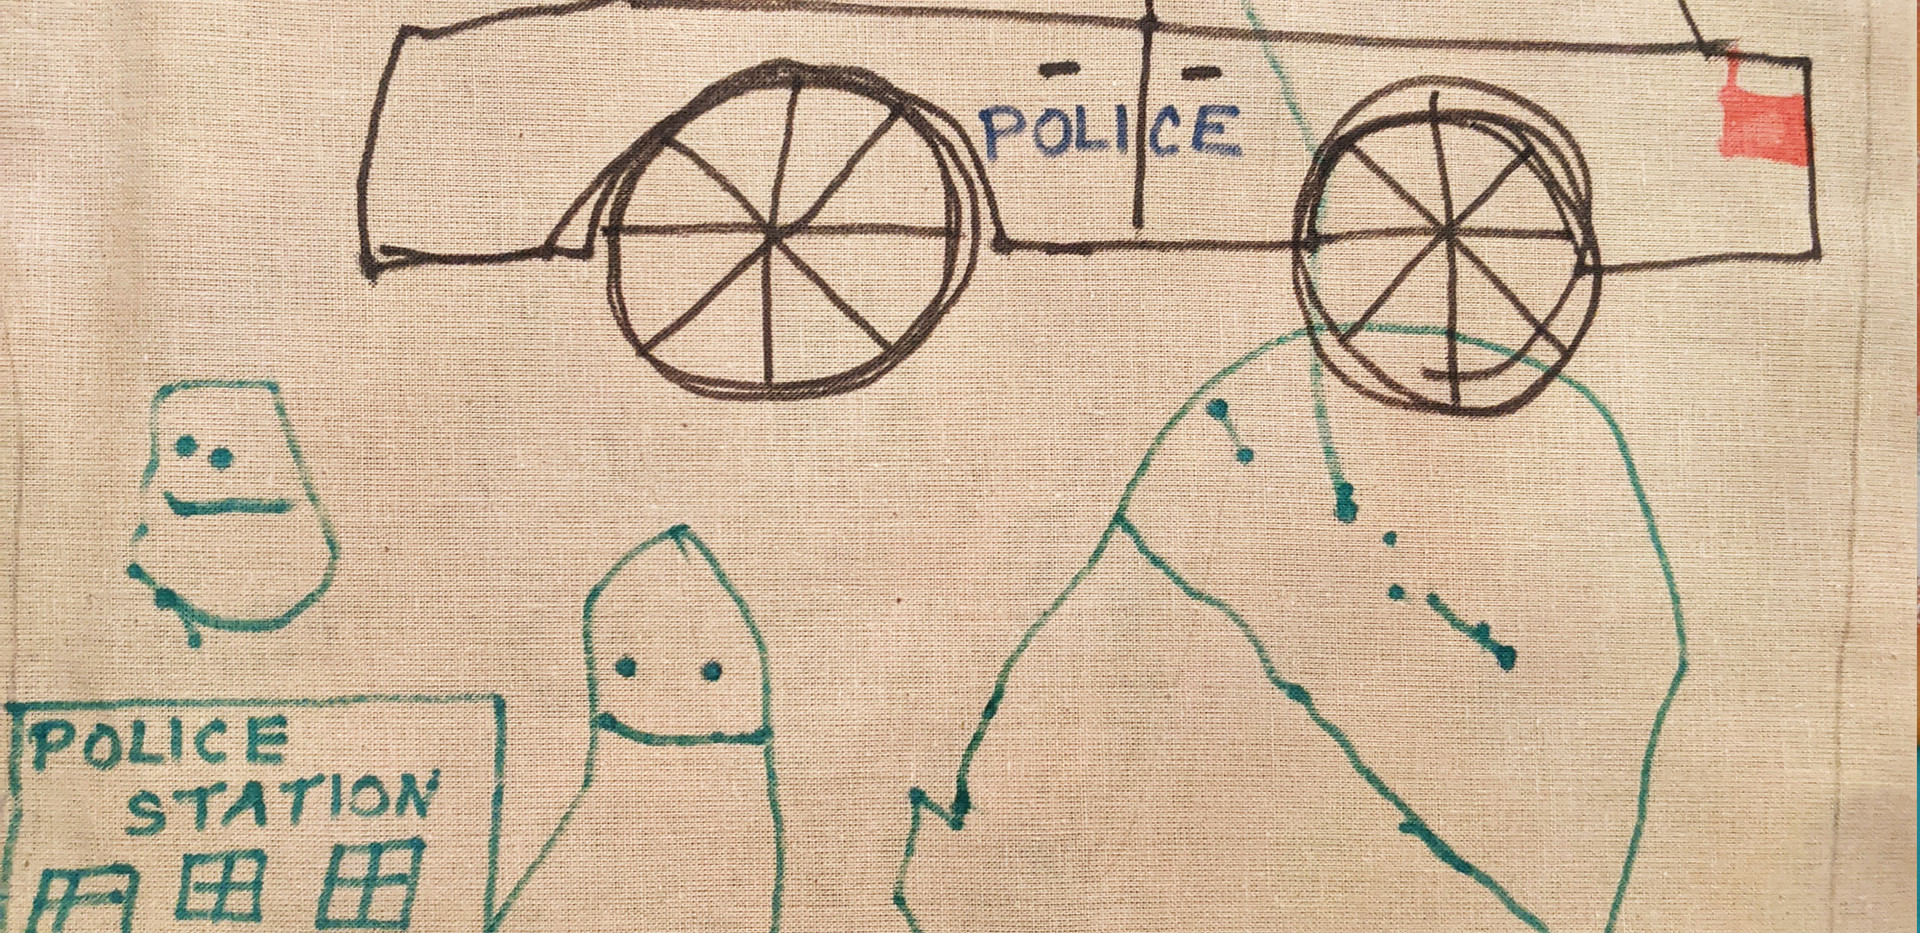 God Bless YouPolice Station Nicklas Age5